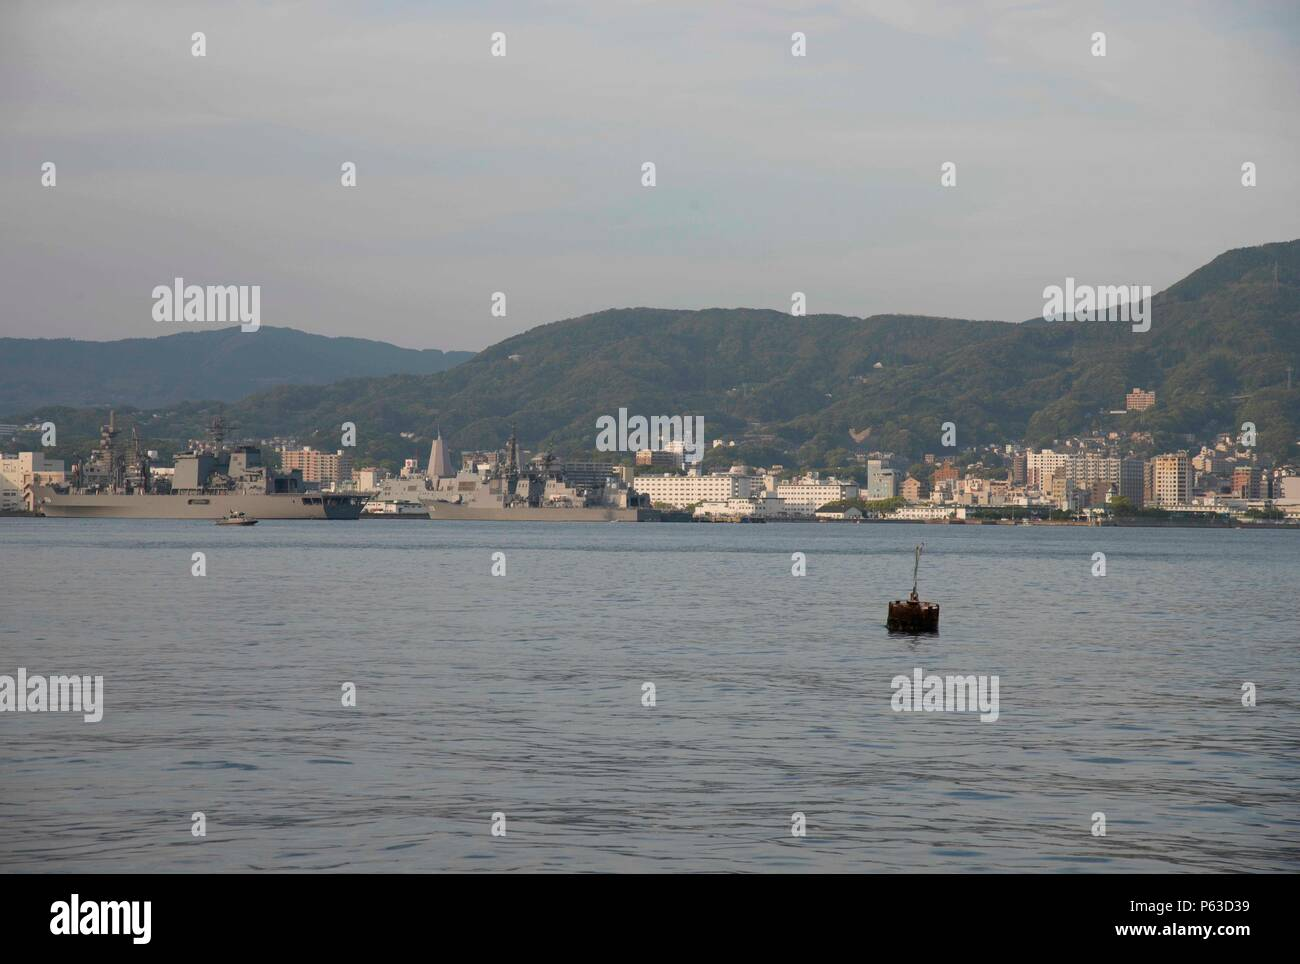 SASEBO, Japan (Apr. 18, 2016)  Commander, U.S. Fleet Activities Sasebo enables 13 forward-deployed Naval forces and 26 tenant commands across 11 geographic locations, supporting a community of 7,000 Sailors, civilians, and family members. The base has received awards for Safety, Environmental, Zumwalt Lodging, Golden Anchor, Food Service, and the 2015 Region Japan Installation of the Year. (U.S. Navy photo by Mass Communication Specialist 1st Class David R. Krigbaum/Released) Stock Photo